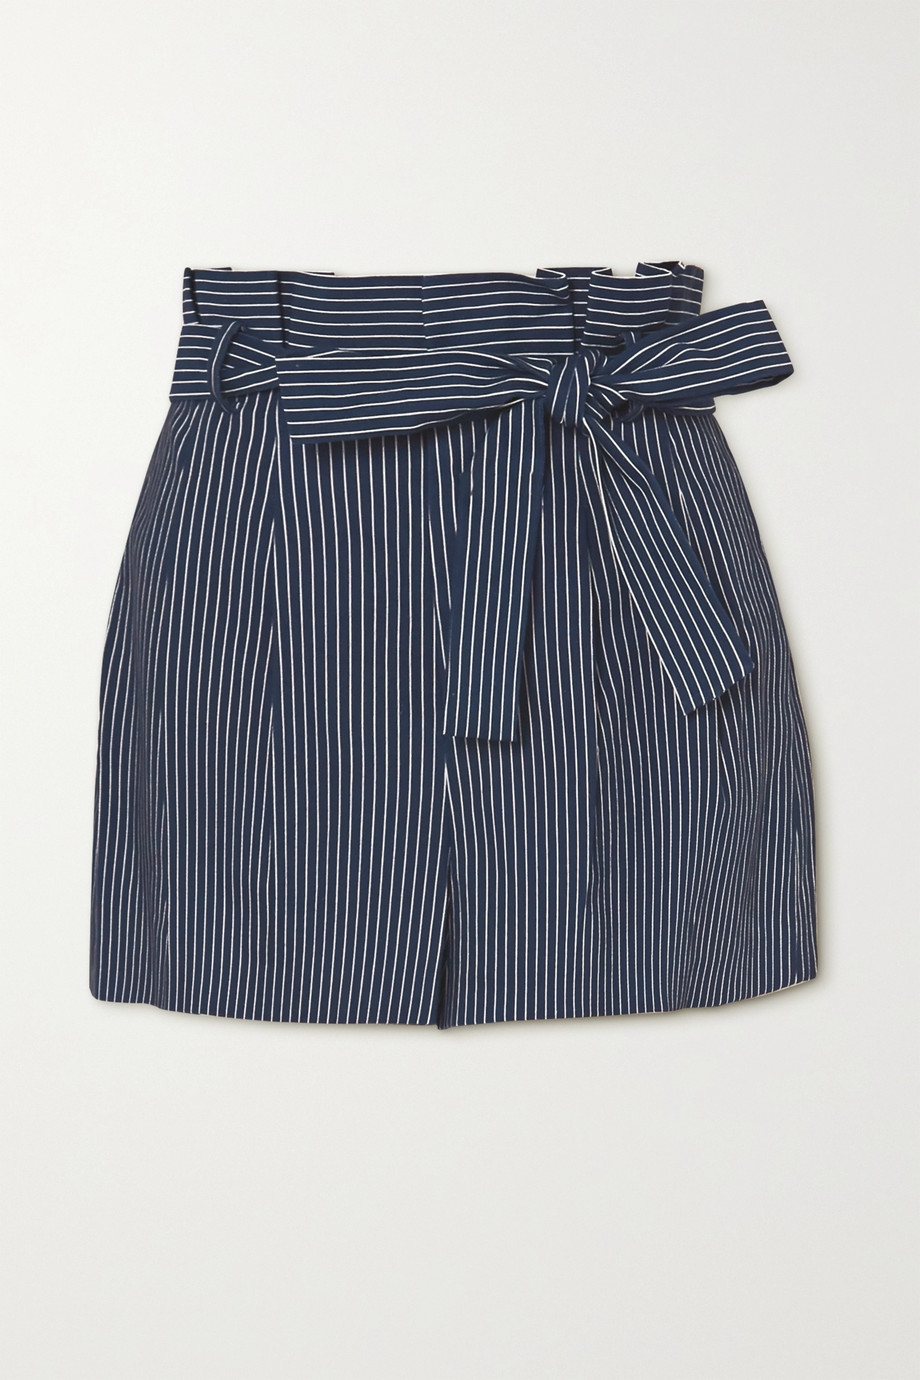 Alice + Olivia Laurine belted striped linen-blend shorts